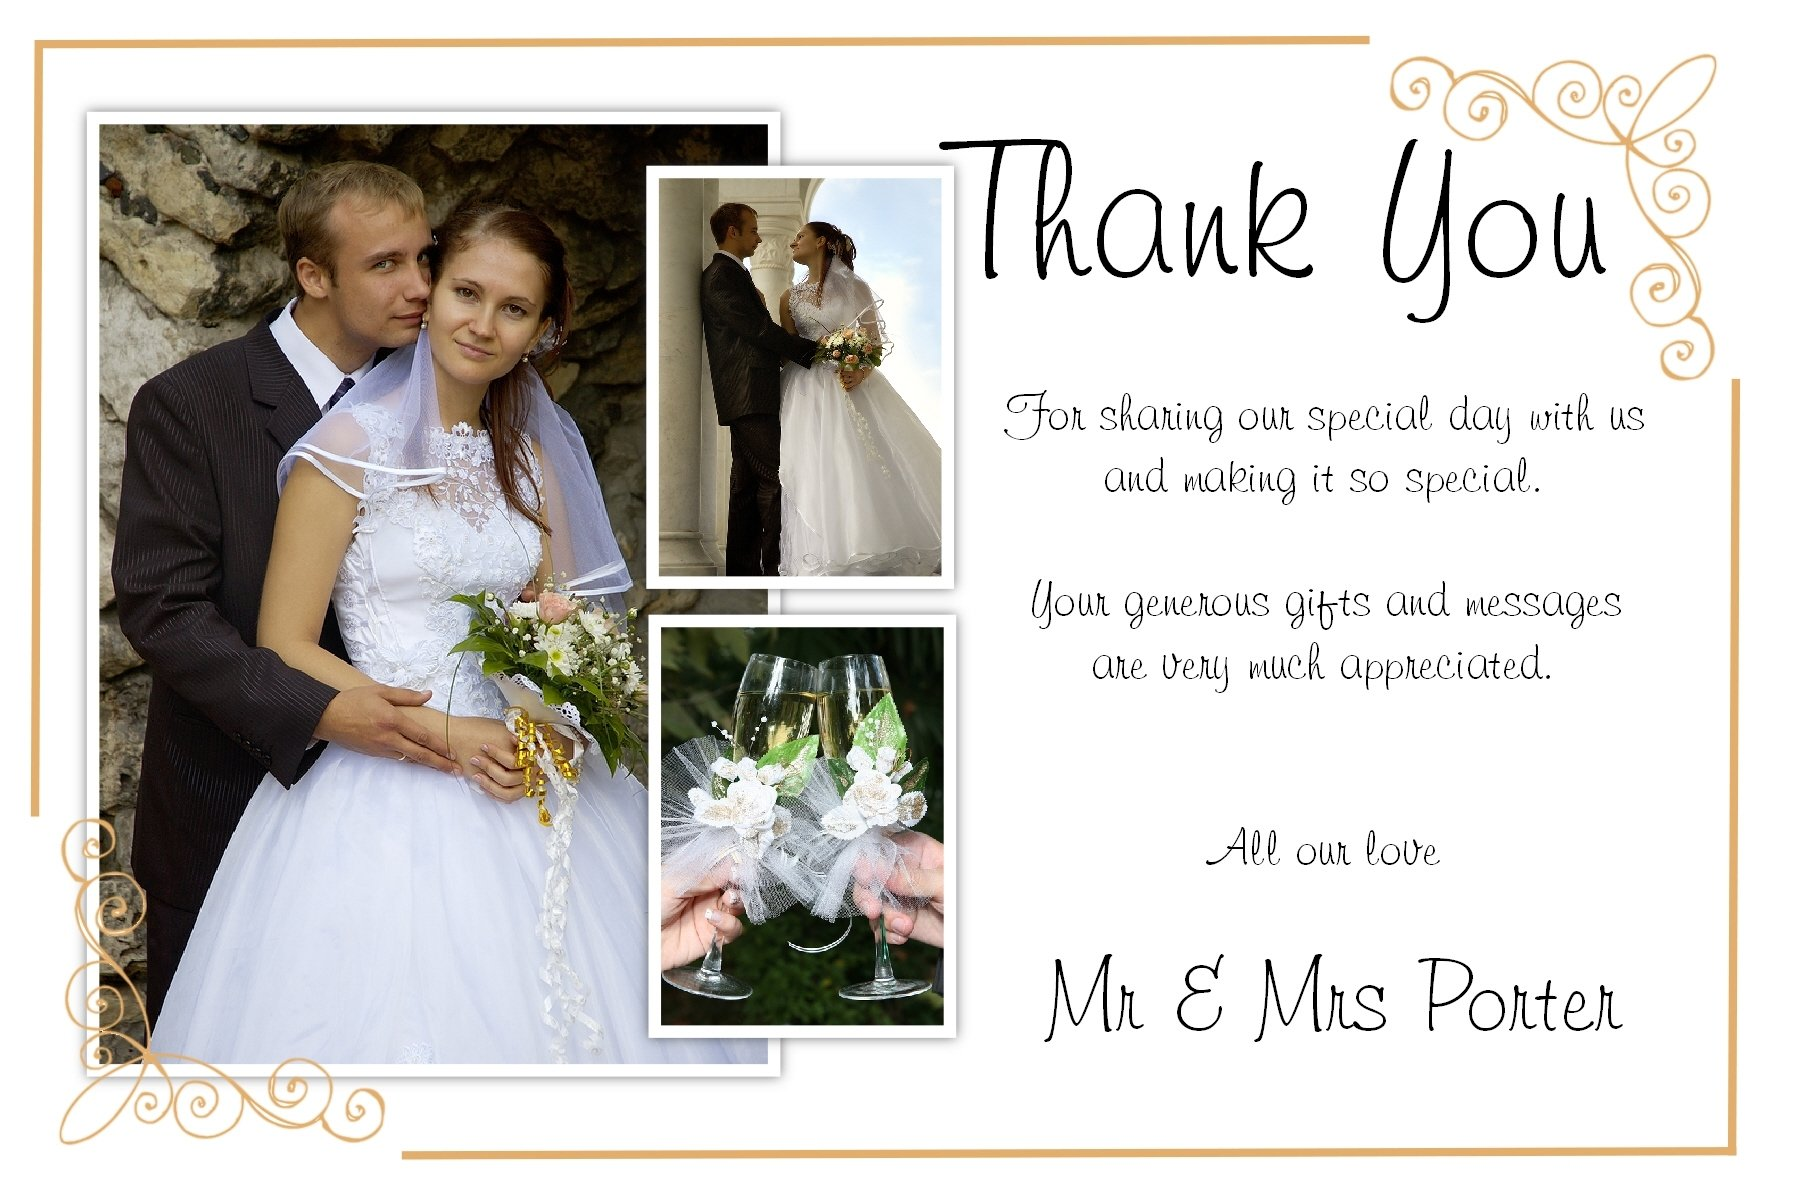 10 Lovely Wedding Thank You Card Ideas awesome photo wedding thank you cards which can be used as wedding 2020